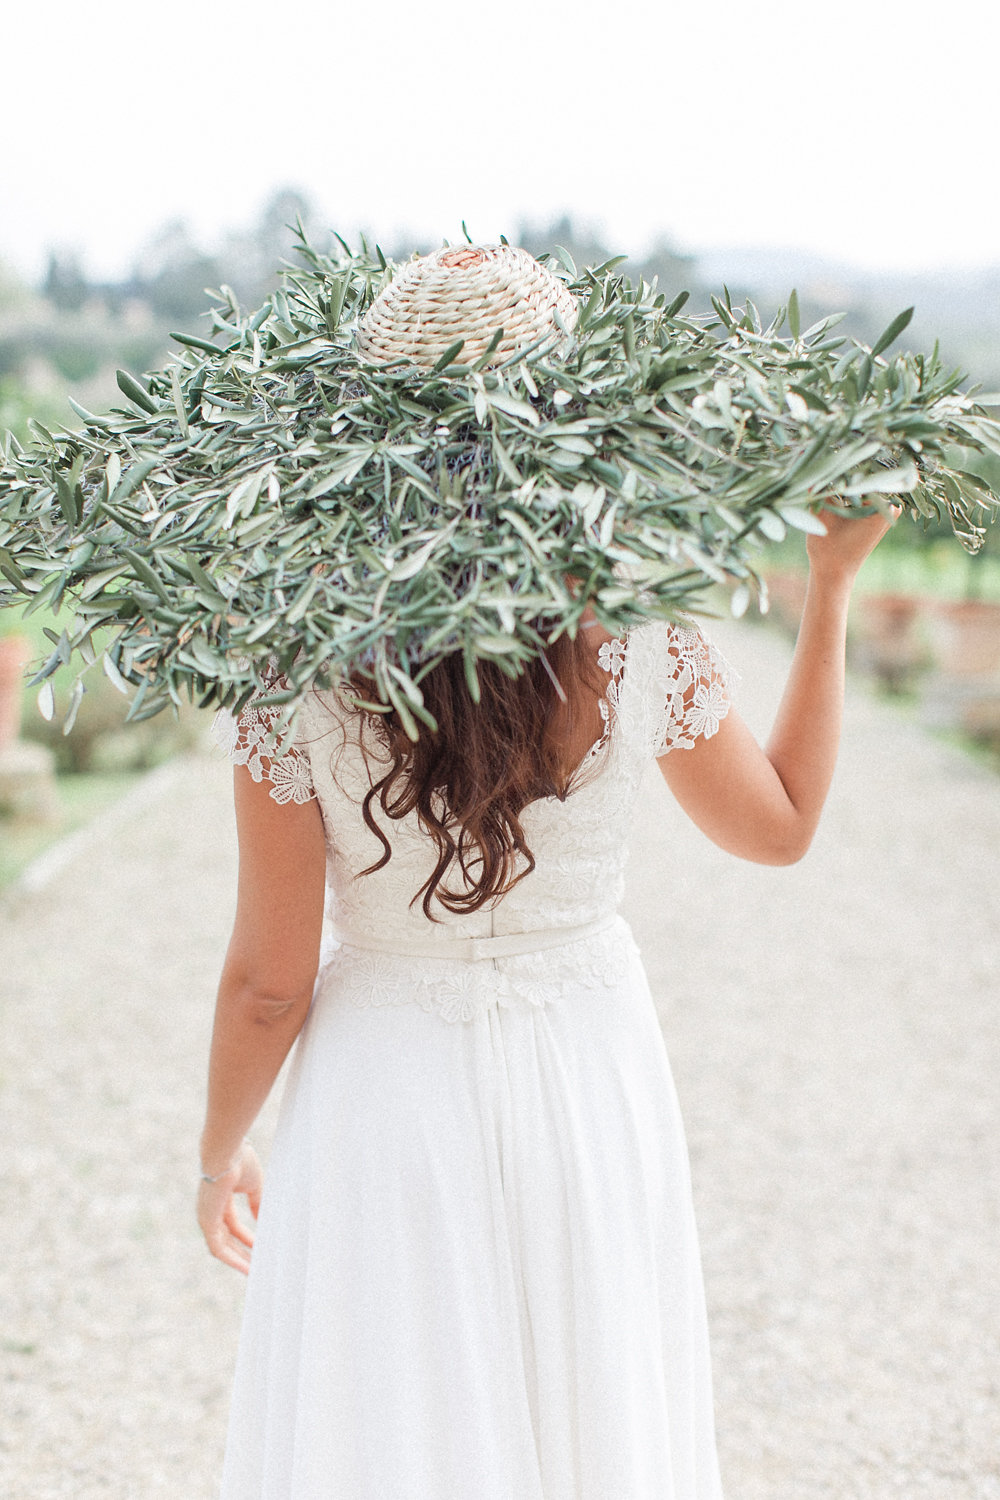 Tuscany Wedding Photographer Roberta Facchini 303